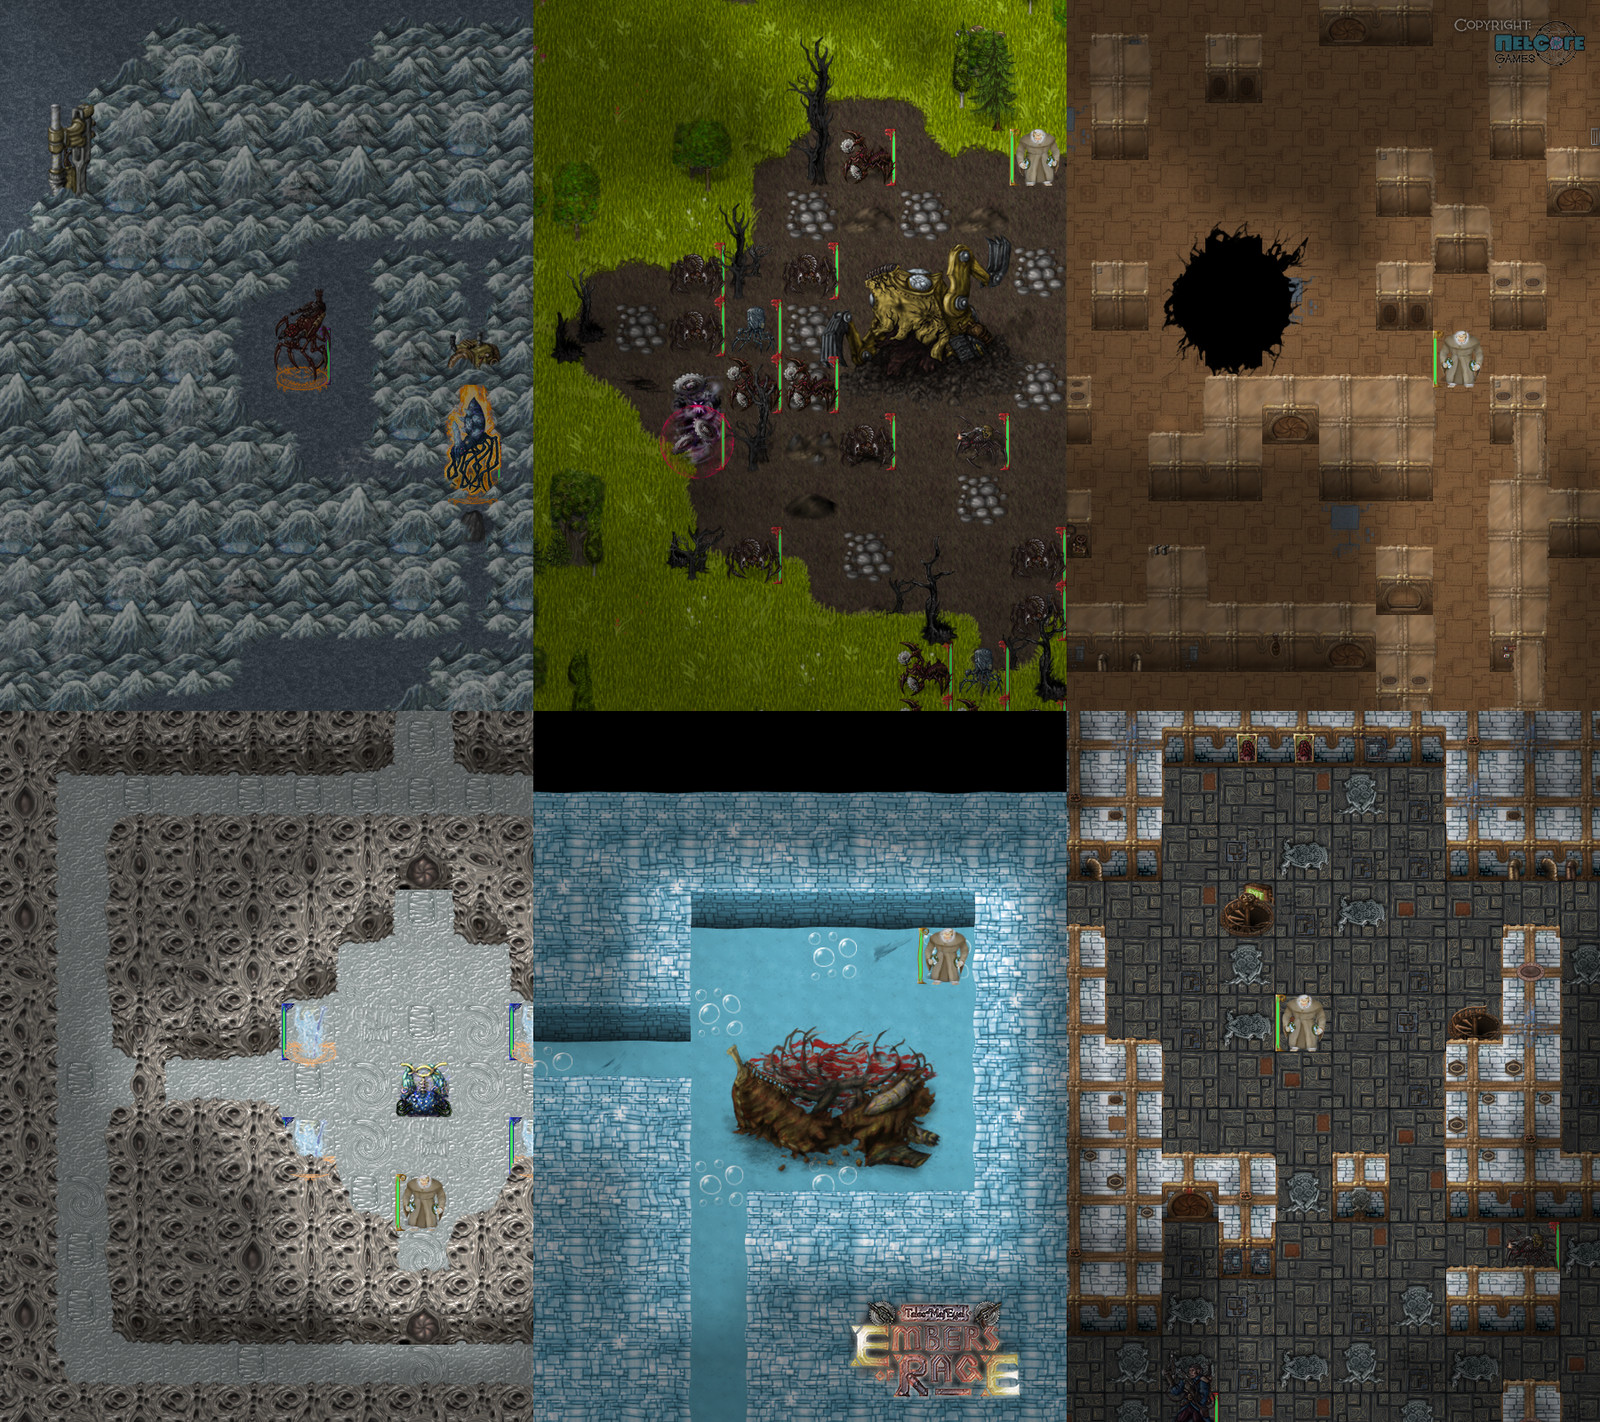 """Terrain features and tilesets: geothermal mountains, steamtech excavator, mech tileset, ancient strange ruins, crashed airship, steam giants palace tileset. Additional game artwork by Raymond """"Shockbolt"""" Gaustadnes"""